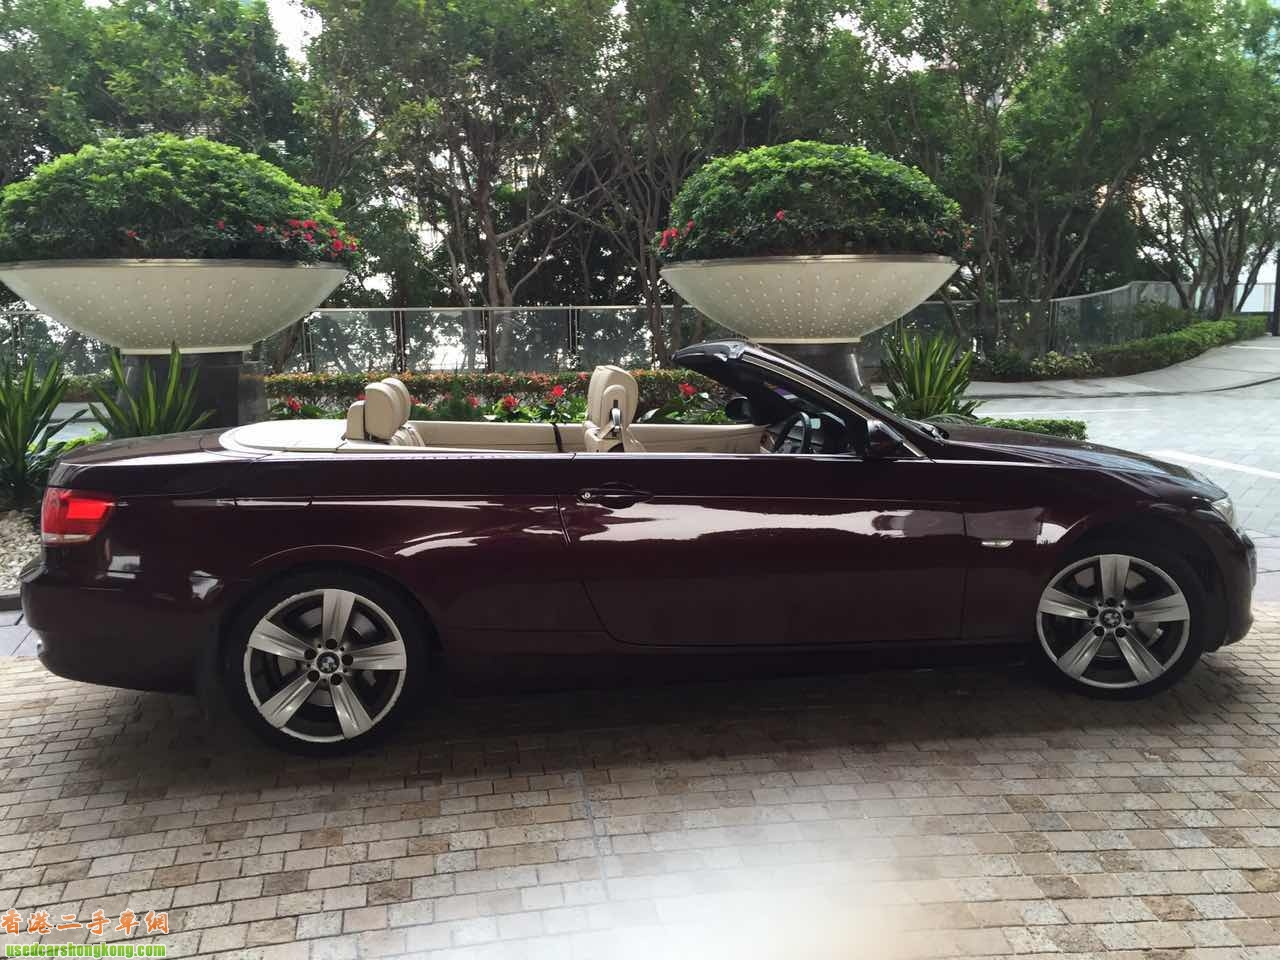 Permalink to Bentley Used Car Hong Kong